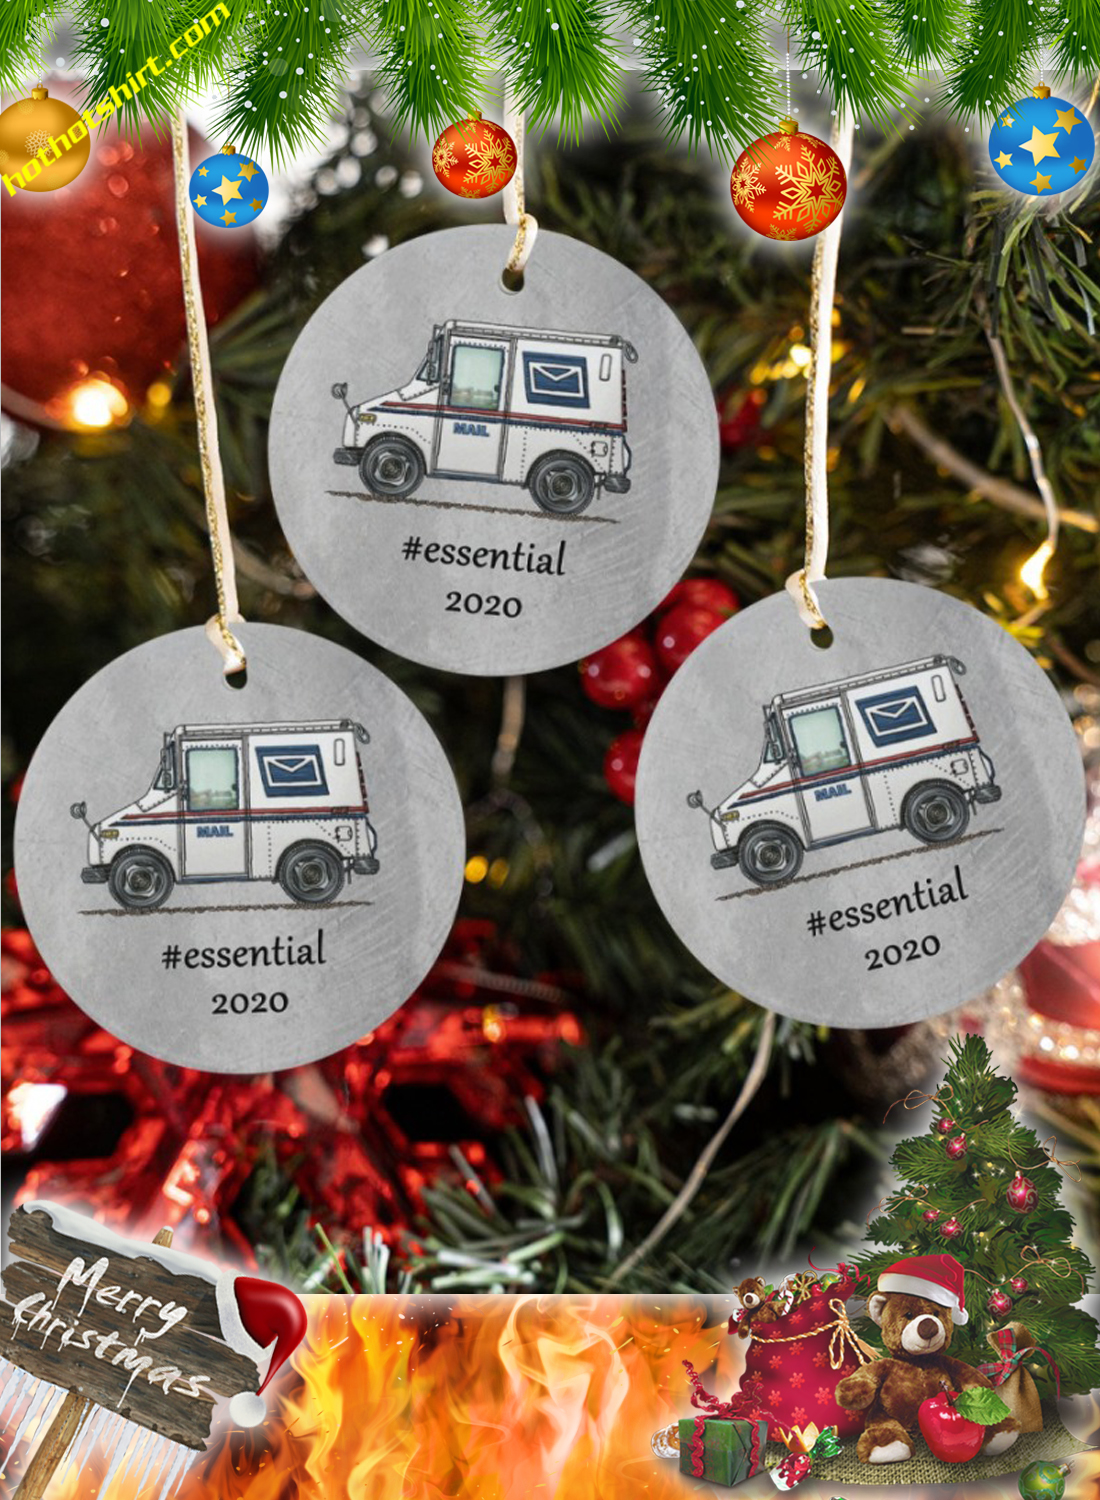 Postal Worker Mail Carrier Essential 2020 Ornaments